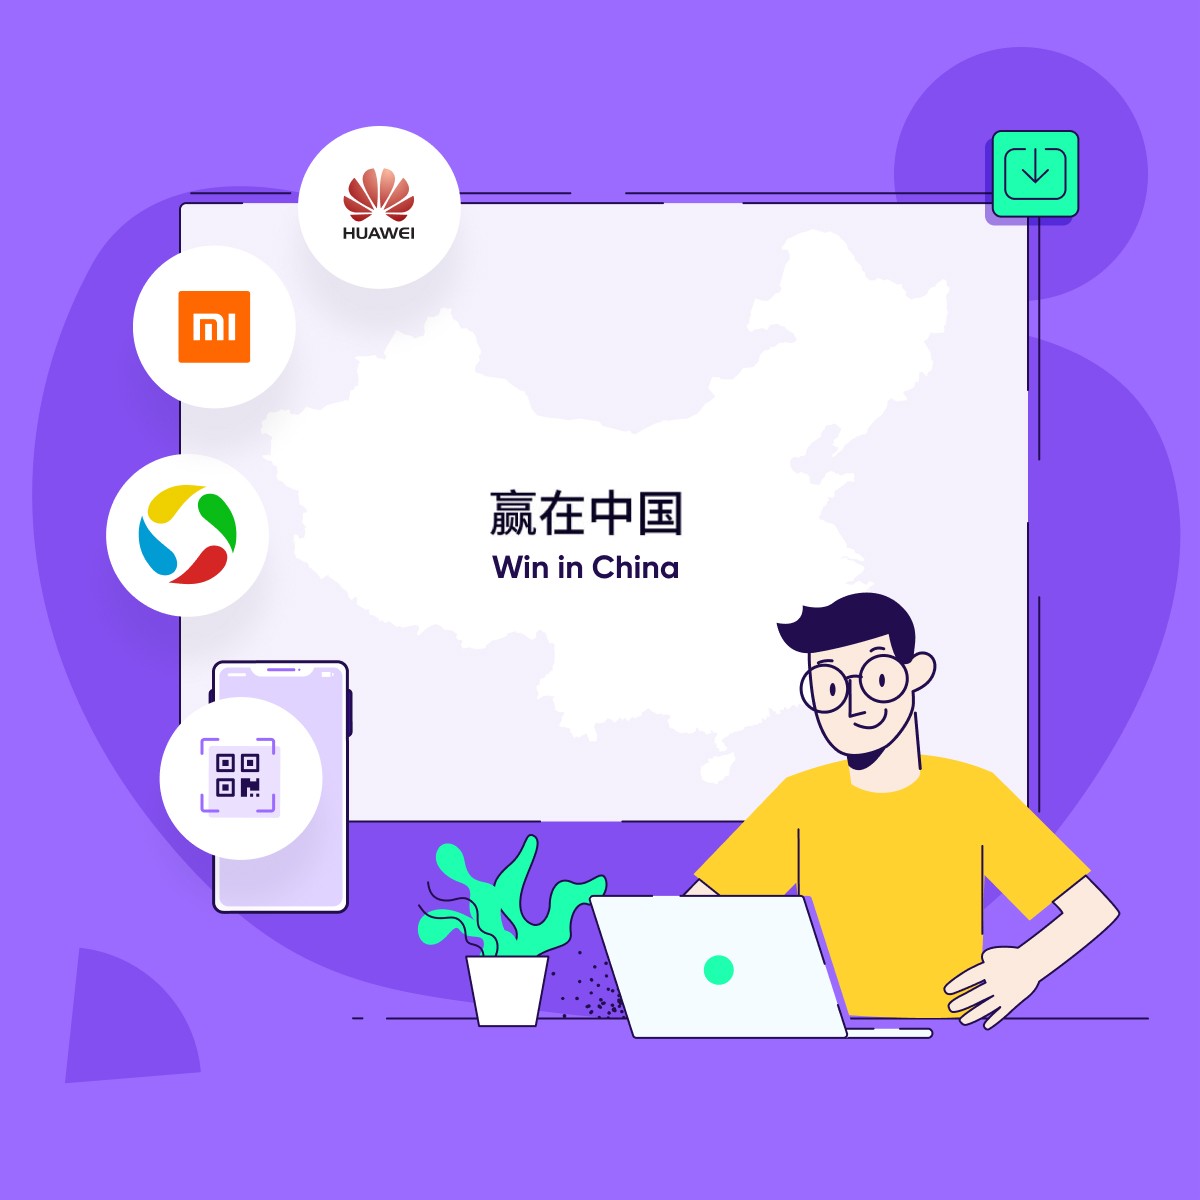 apps entering china challenges - Square